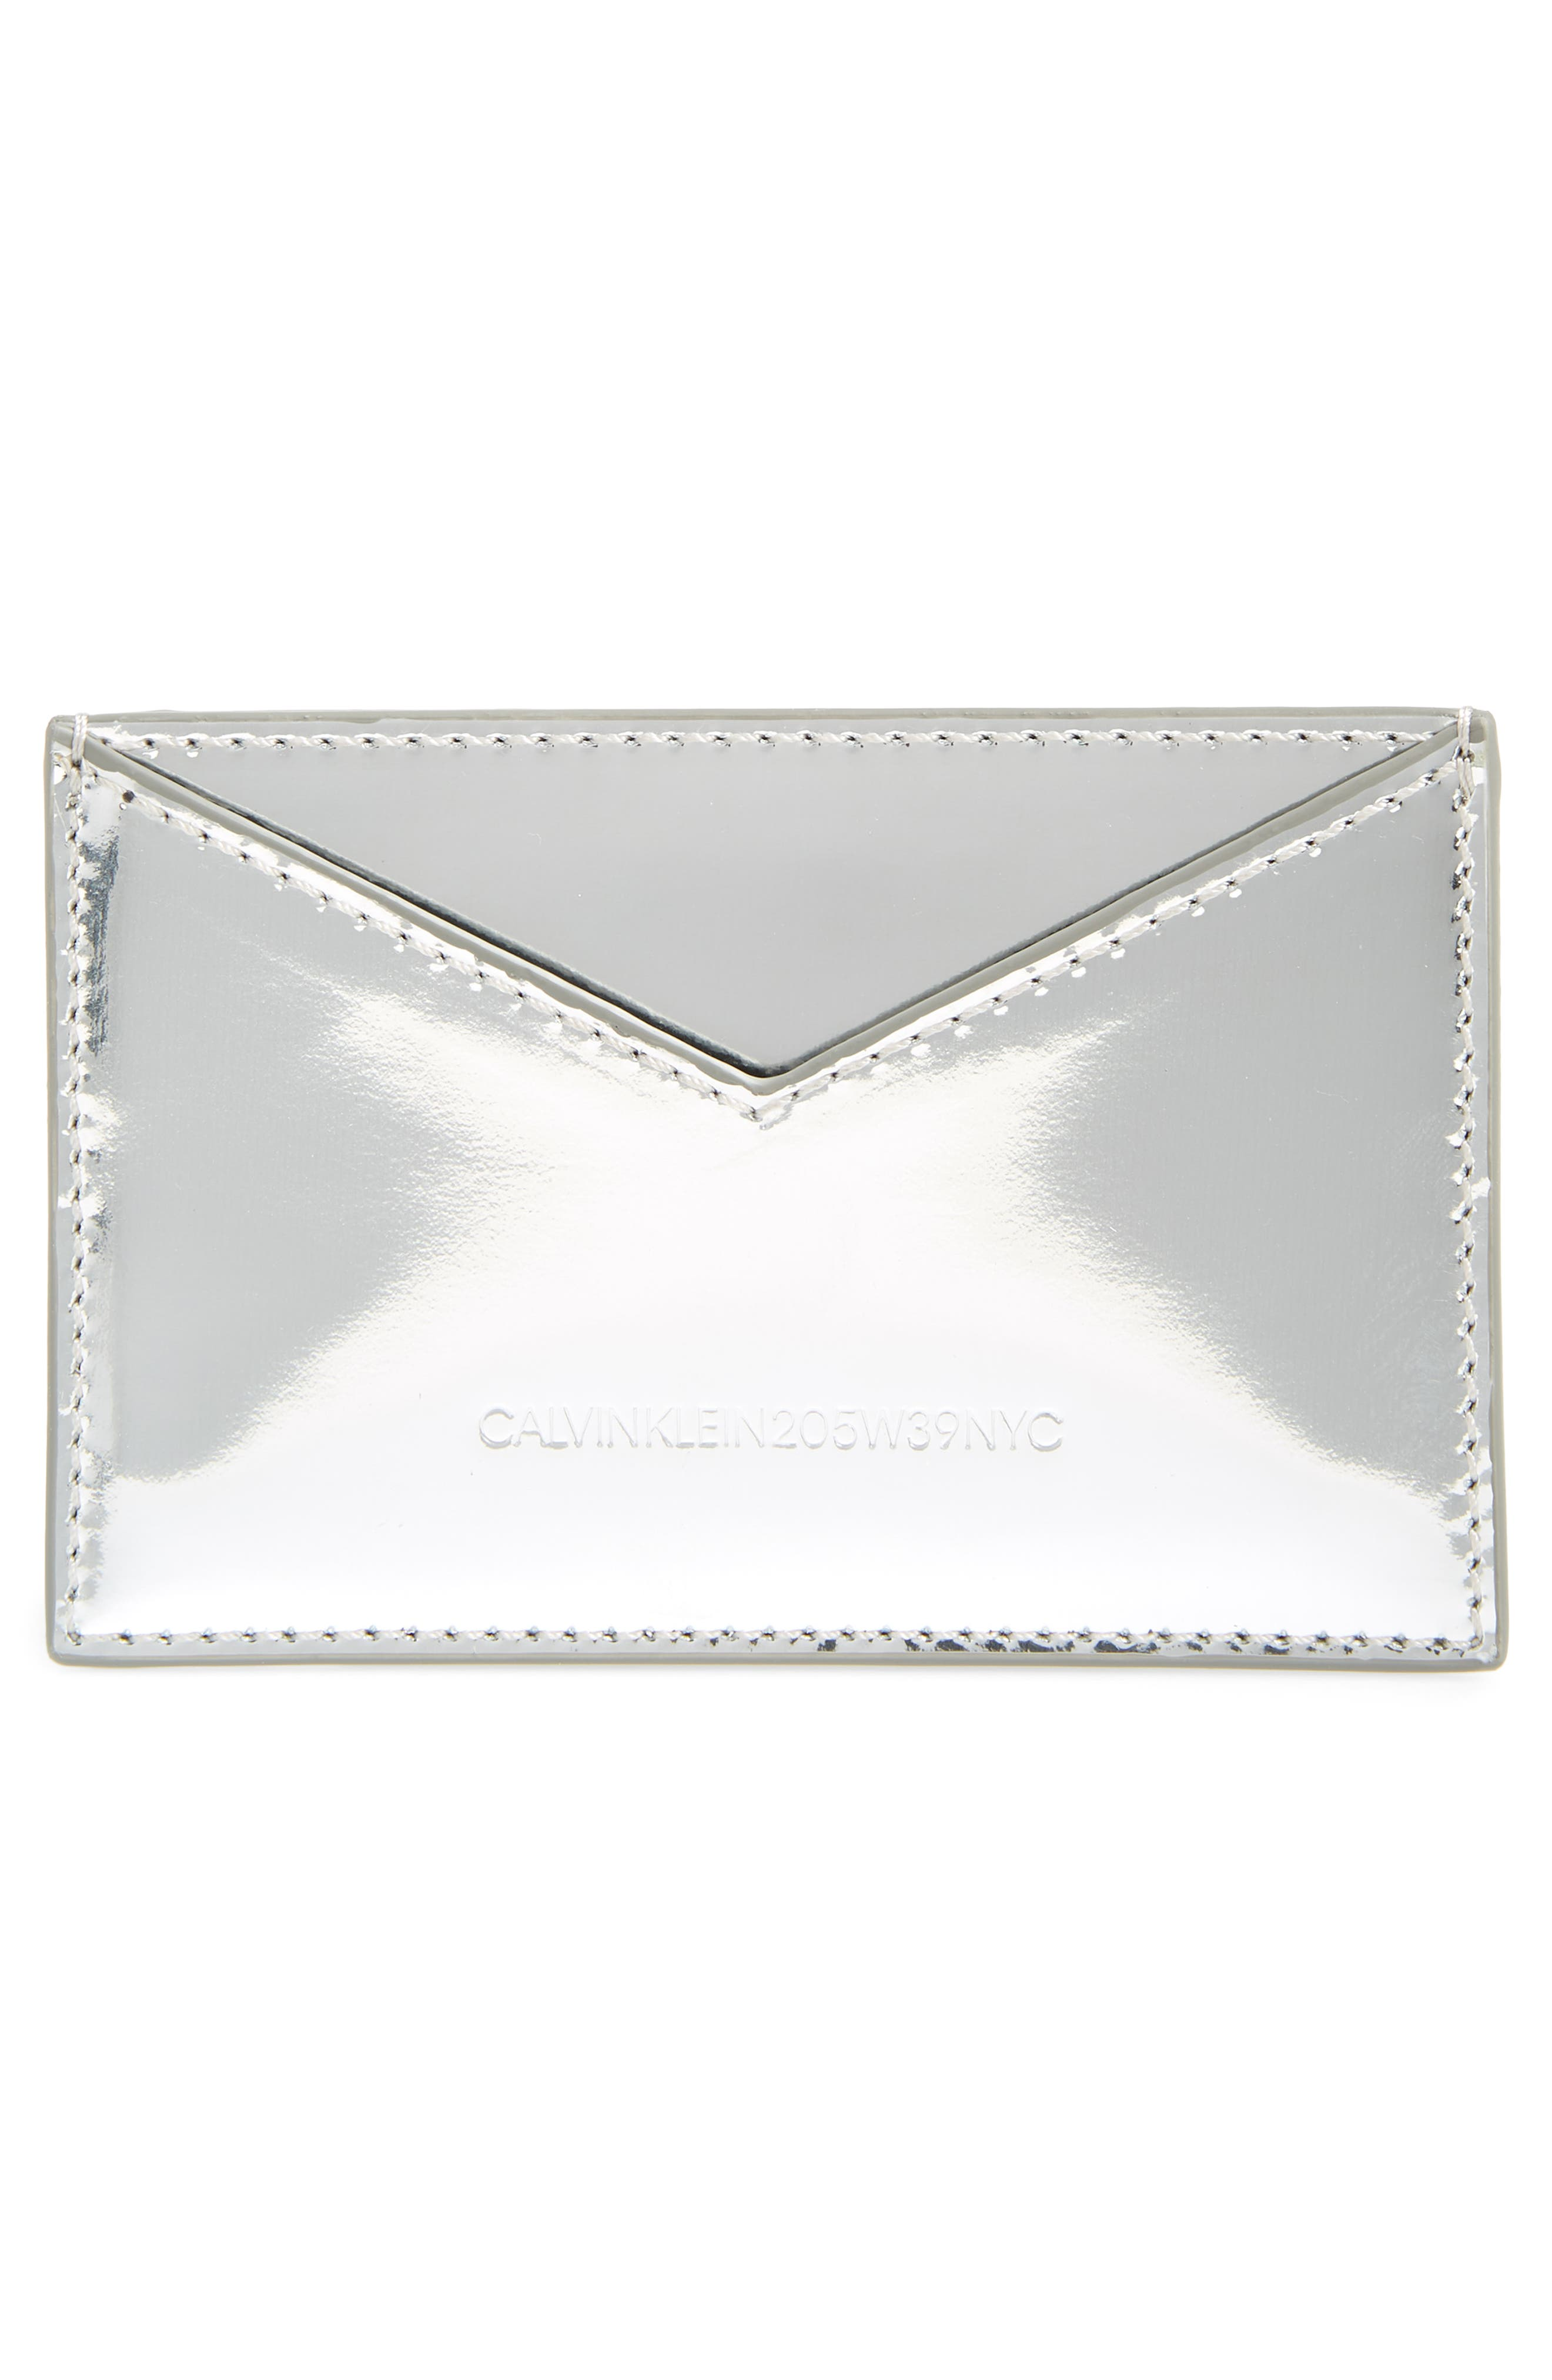 Small Leather Card Case,                             Alternate thumbnail 2, color,                             045